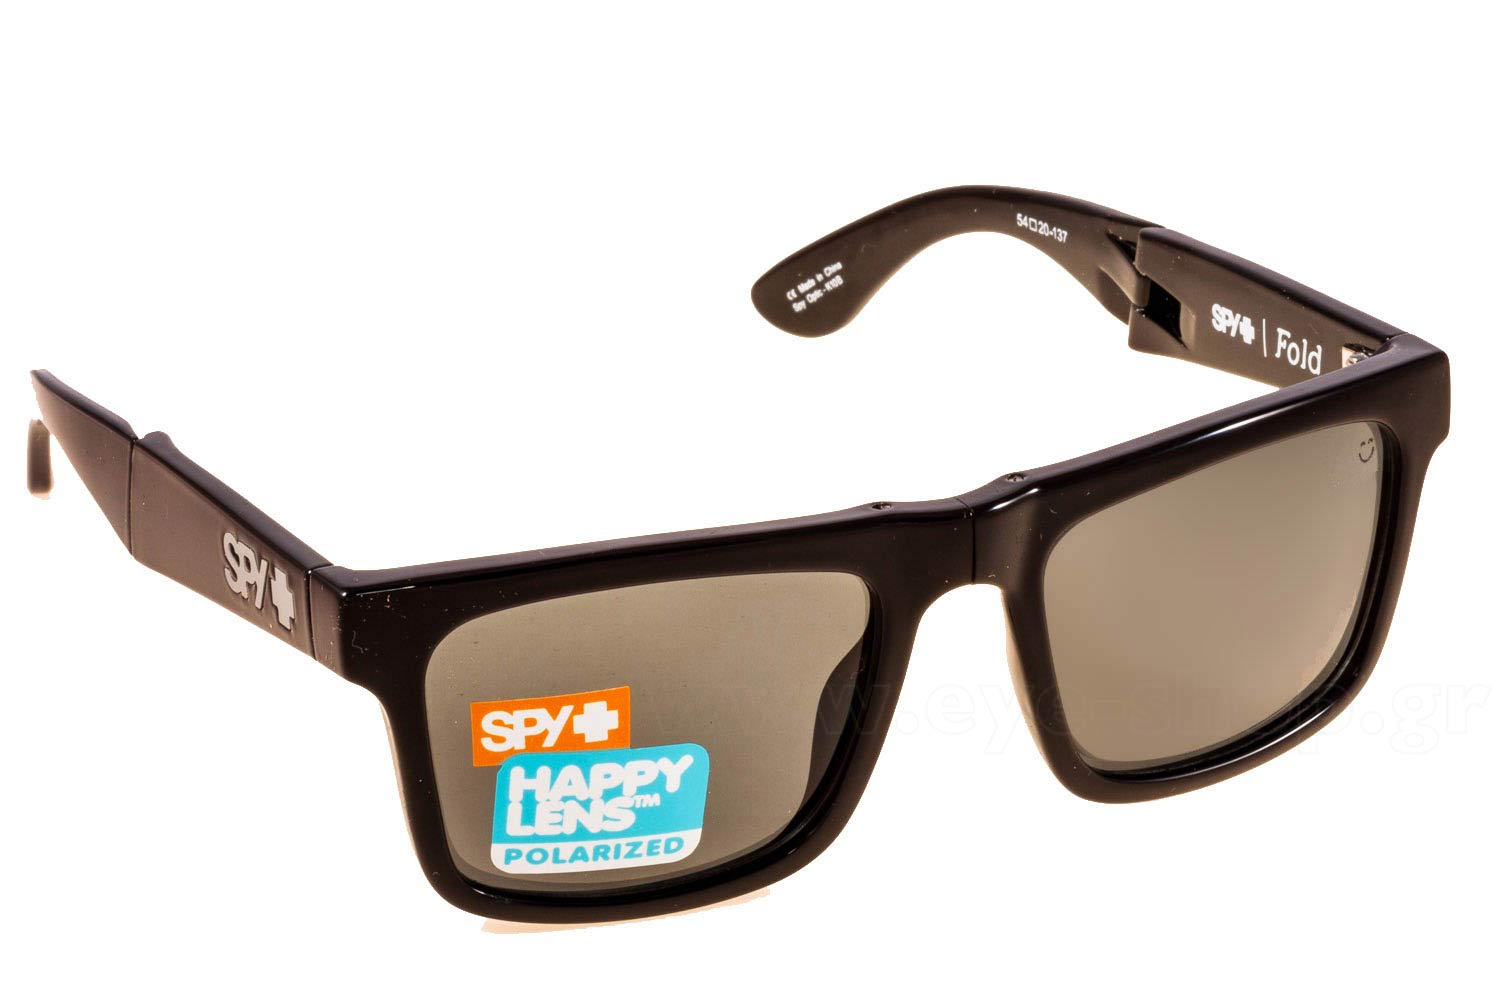 0eb91b7874 SUNGLASSES SPY FOLD BLK- HappyLens GREYGREEN polarized